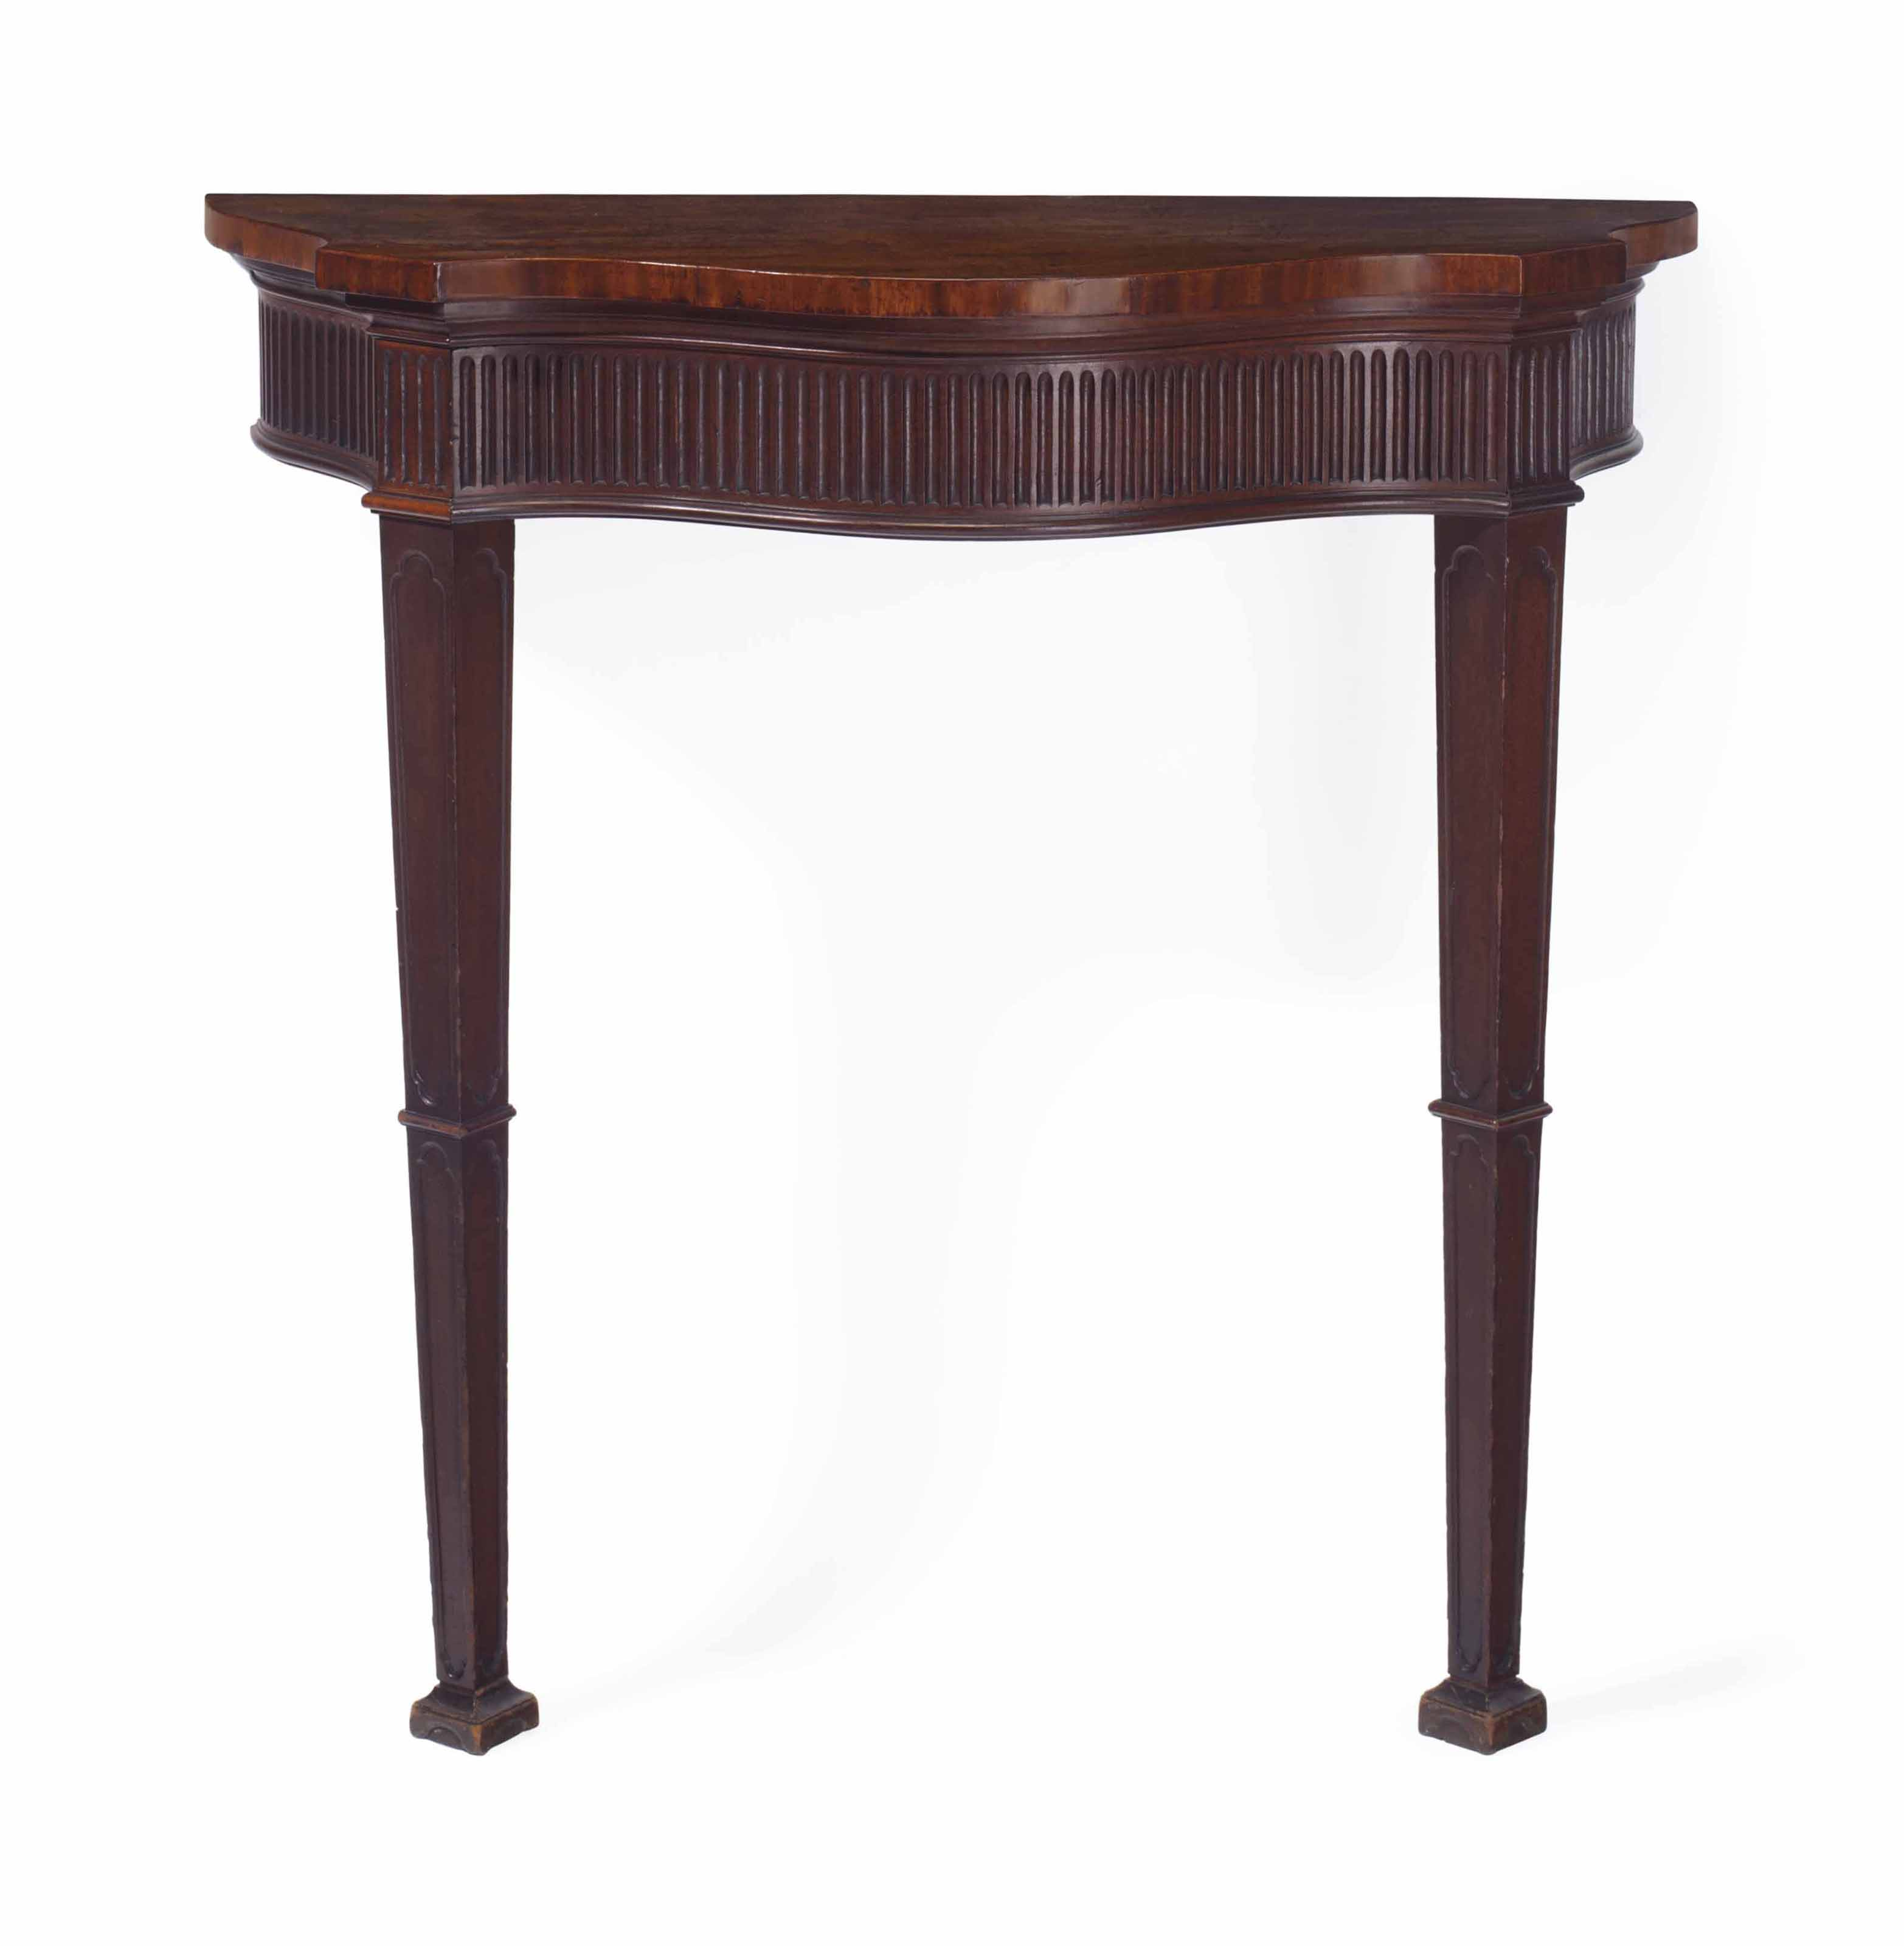 A George Iii Solid Mahogany Console Table Circa 1770 Reduced In